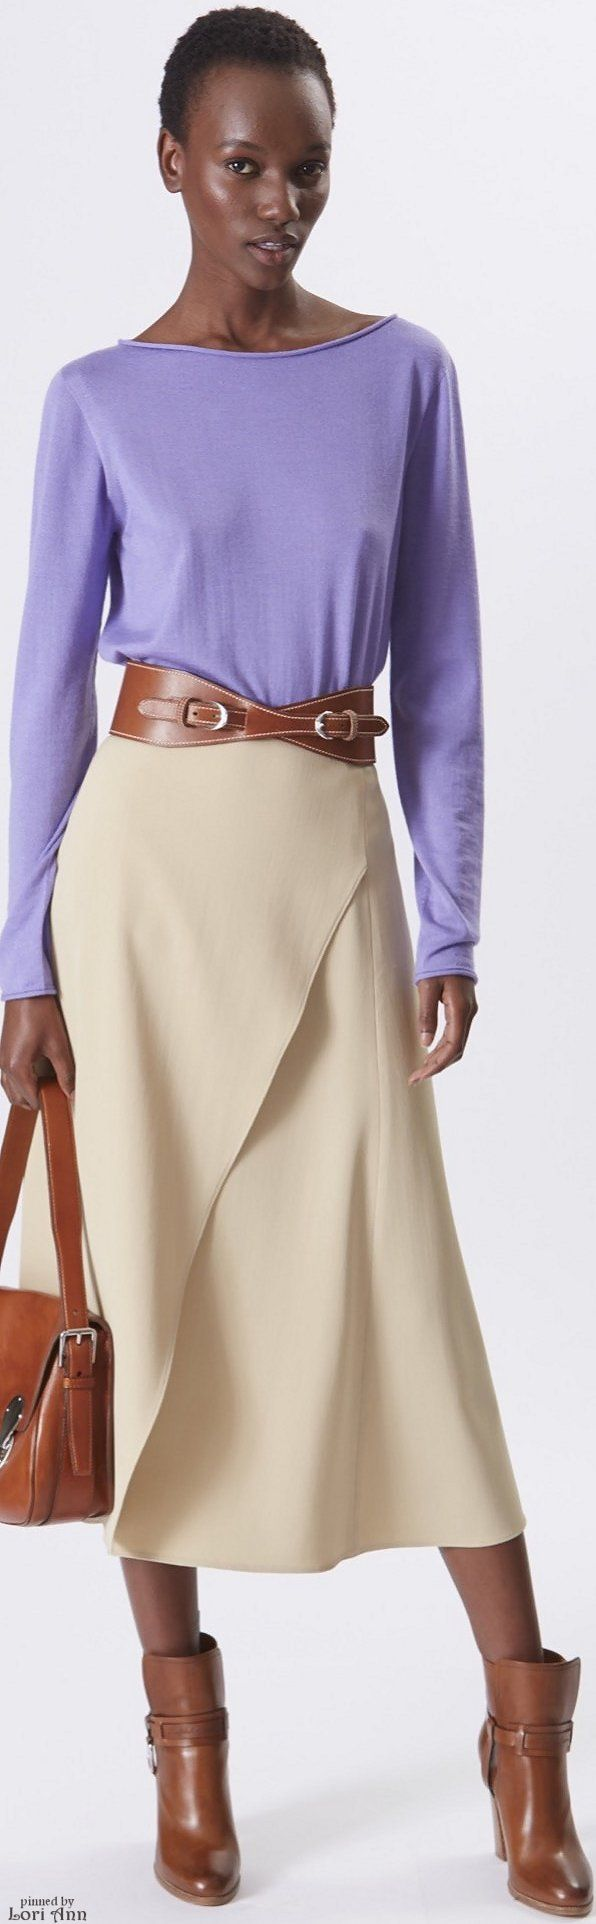 Ralph Lauren Resort 2016. #Modest doesn't mean frumpy. www.ColleenHammond.com #style #fashion